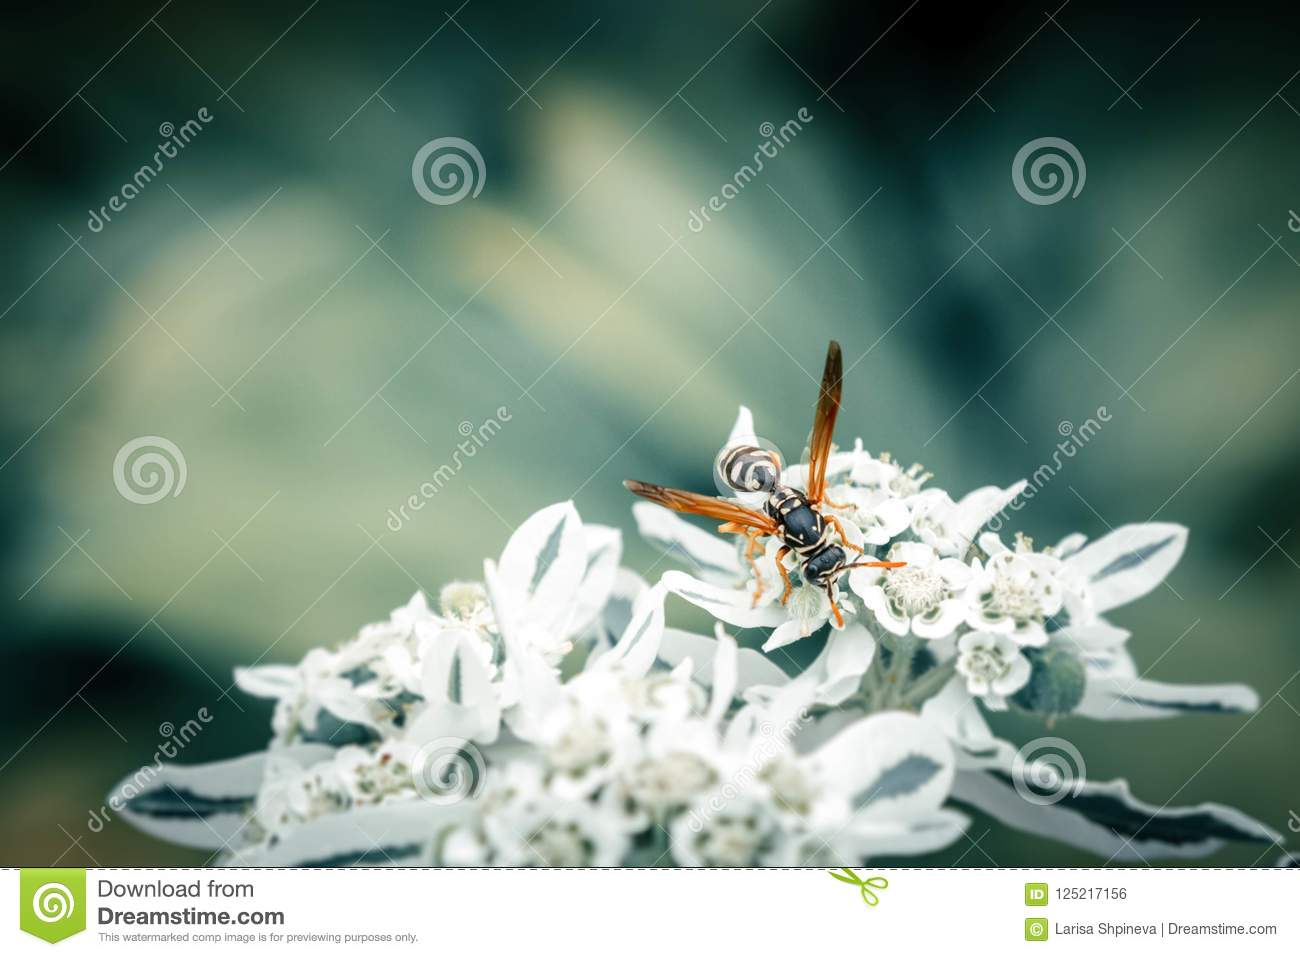 Honey bee collects pollen on white flower on blue blurred background